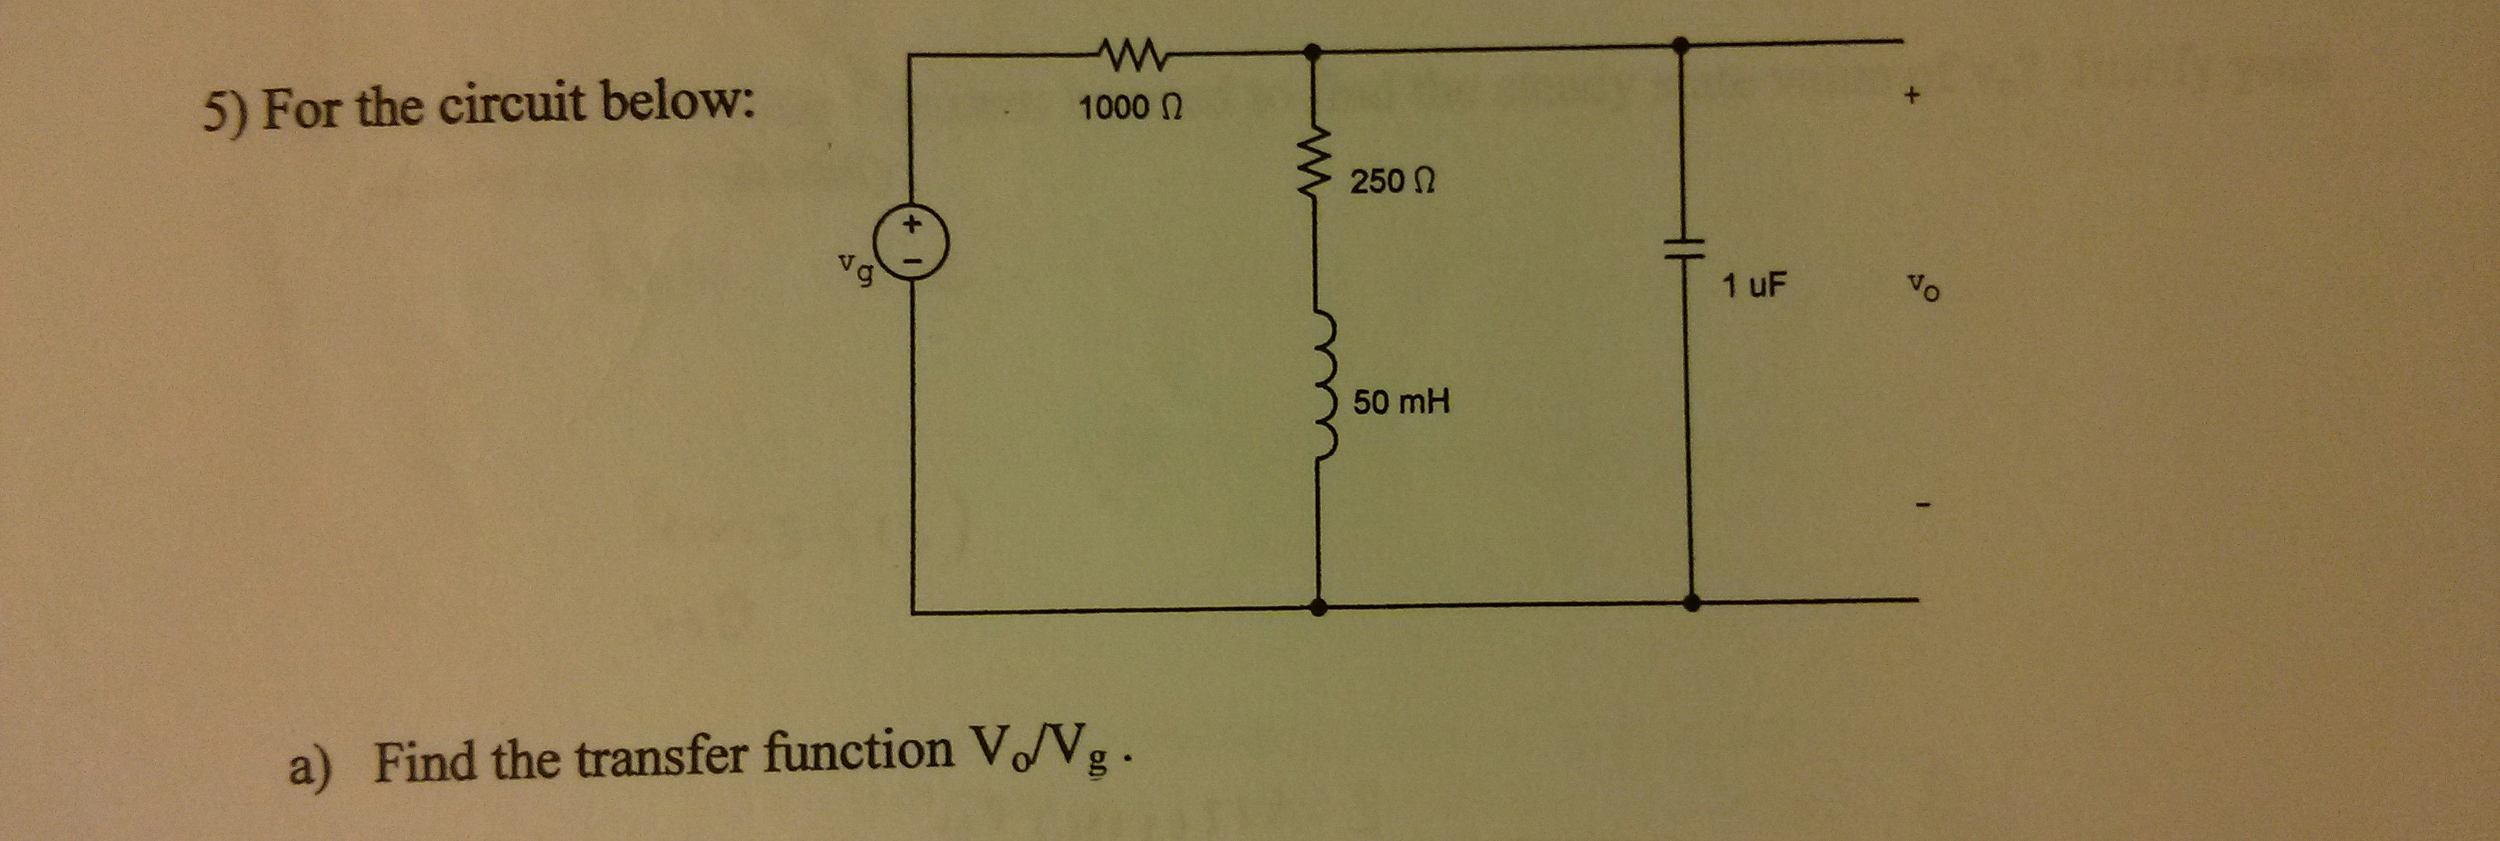 For the circuit below: Find the transfer function